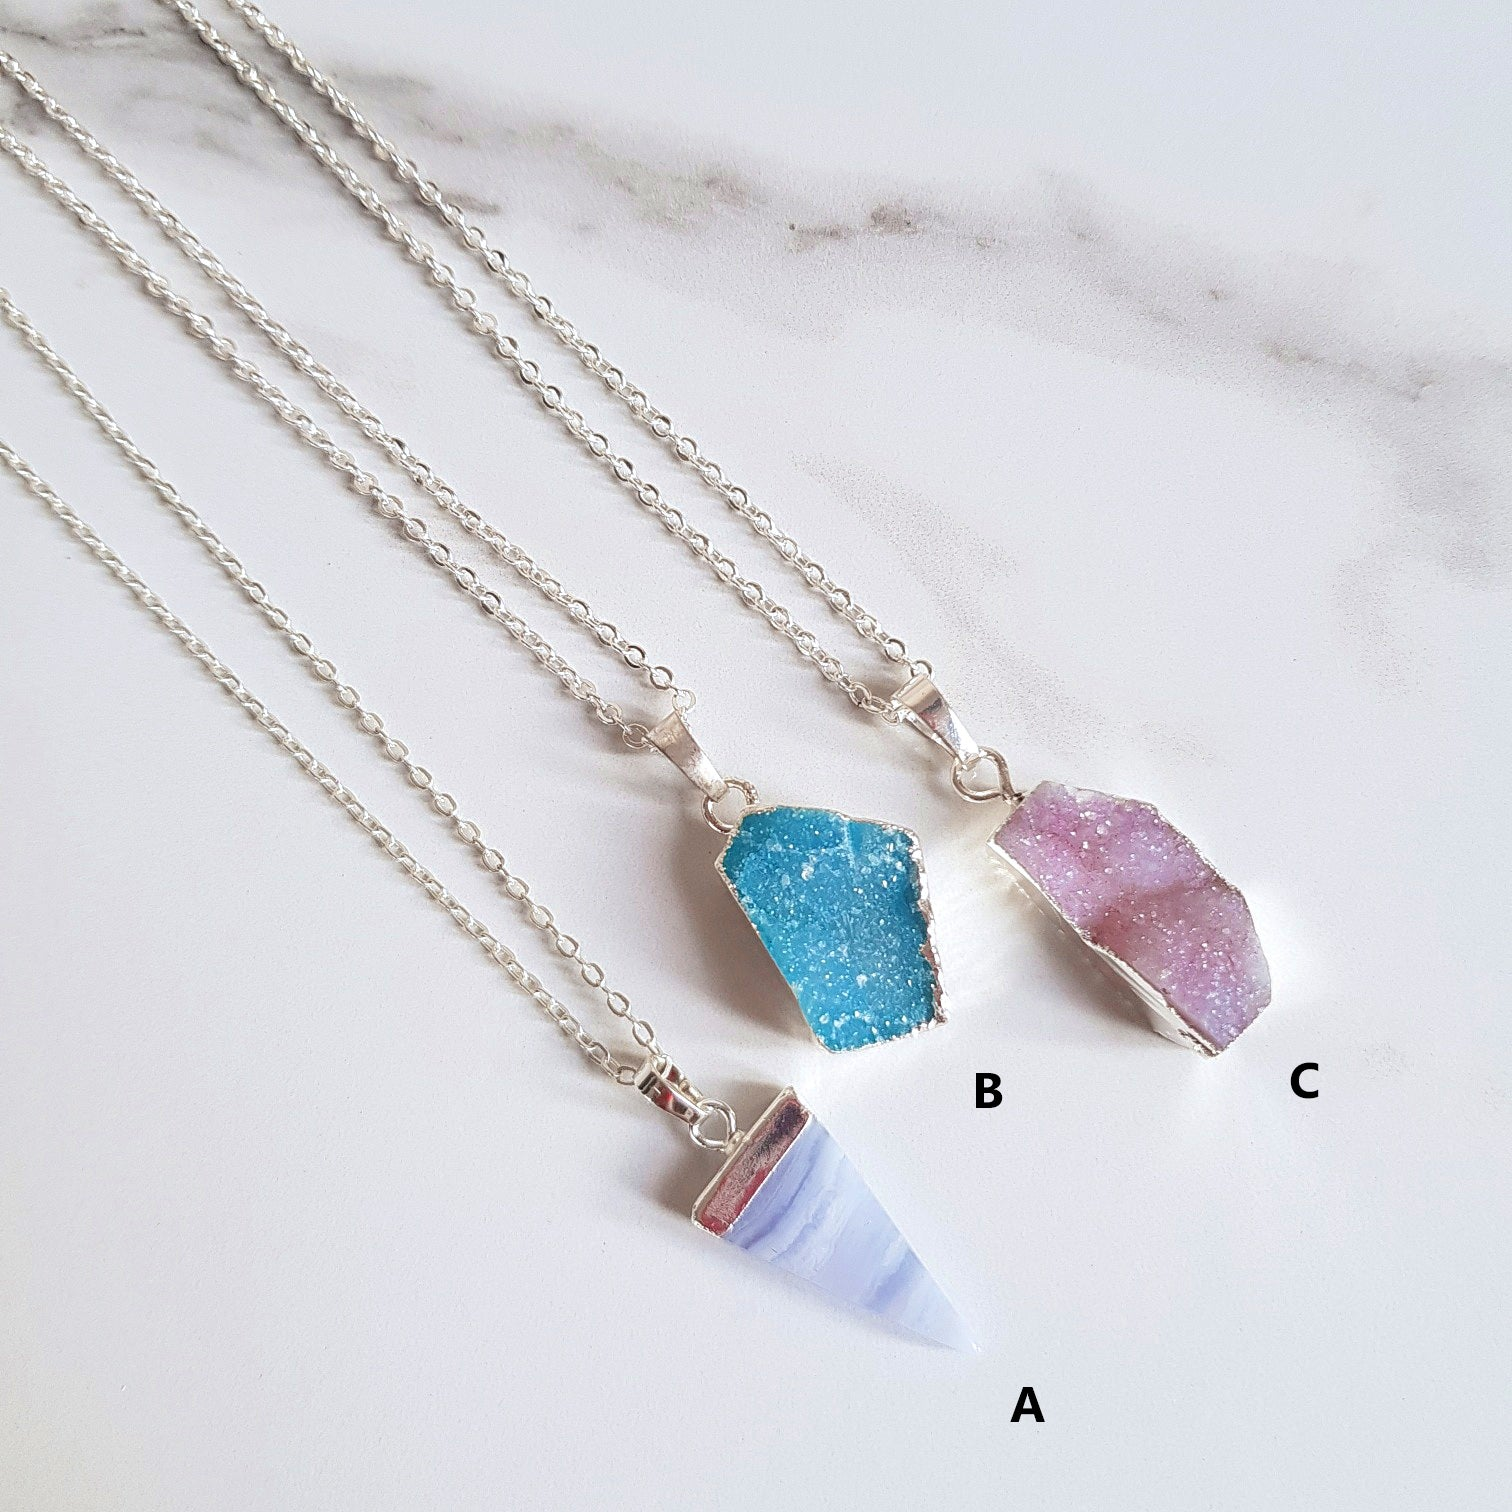 Druzy Quartz & Blue Lace Agate Pendant Necklaces